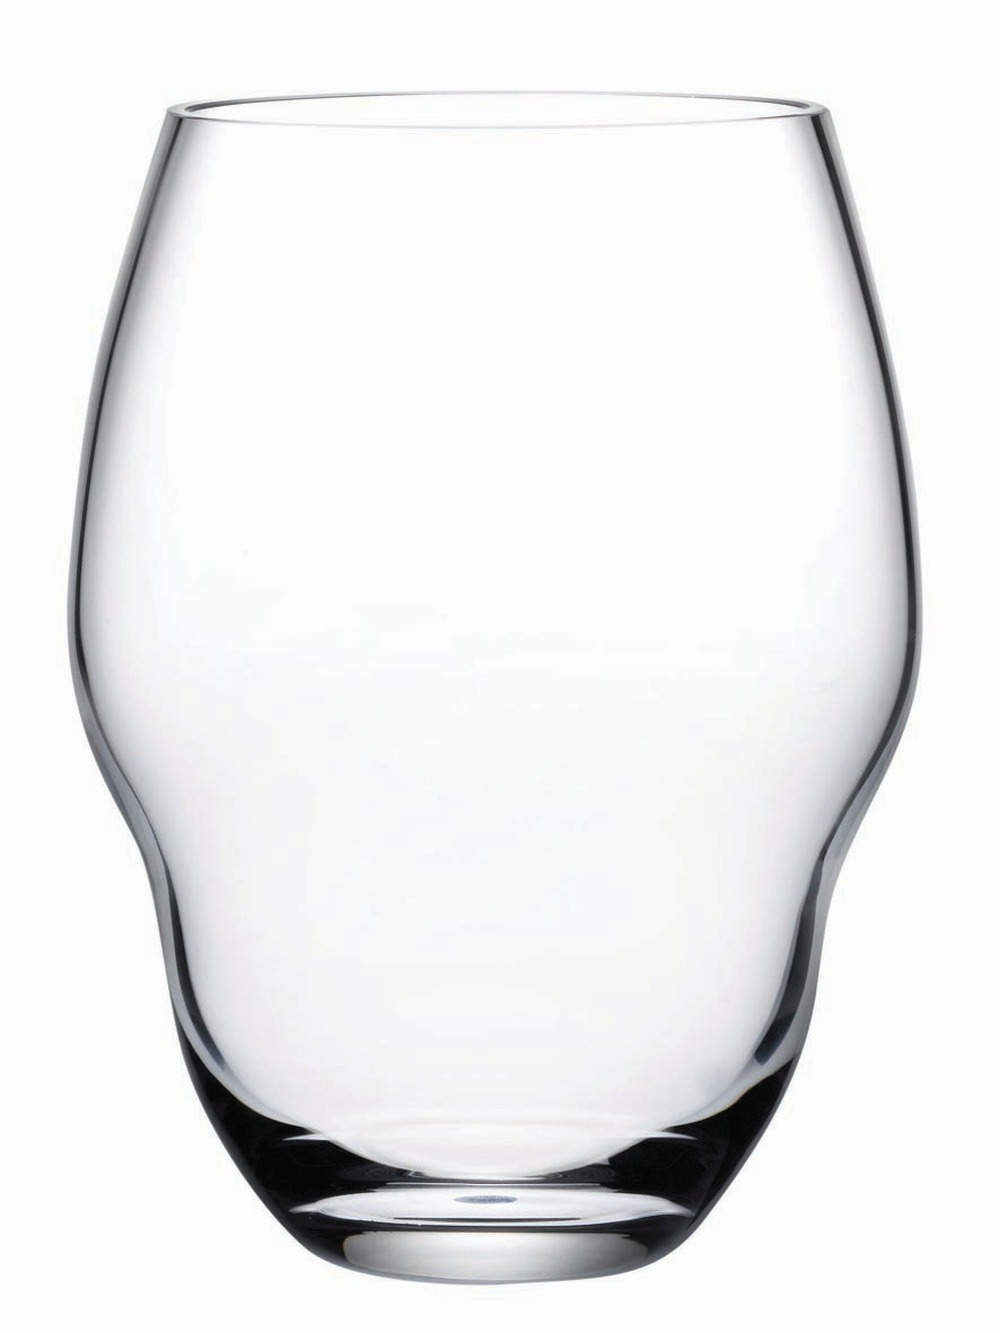 nude_waterglazen_465ml.jpg